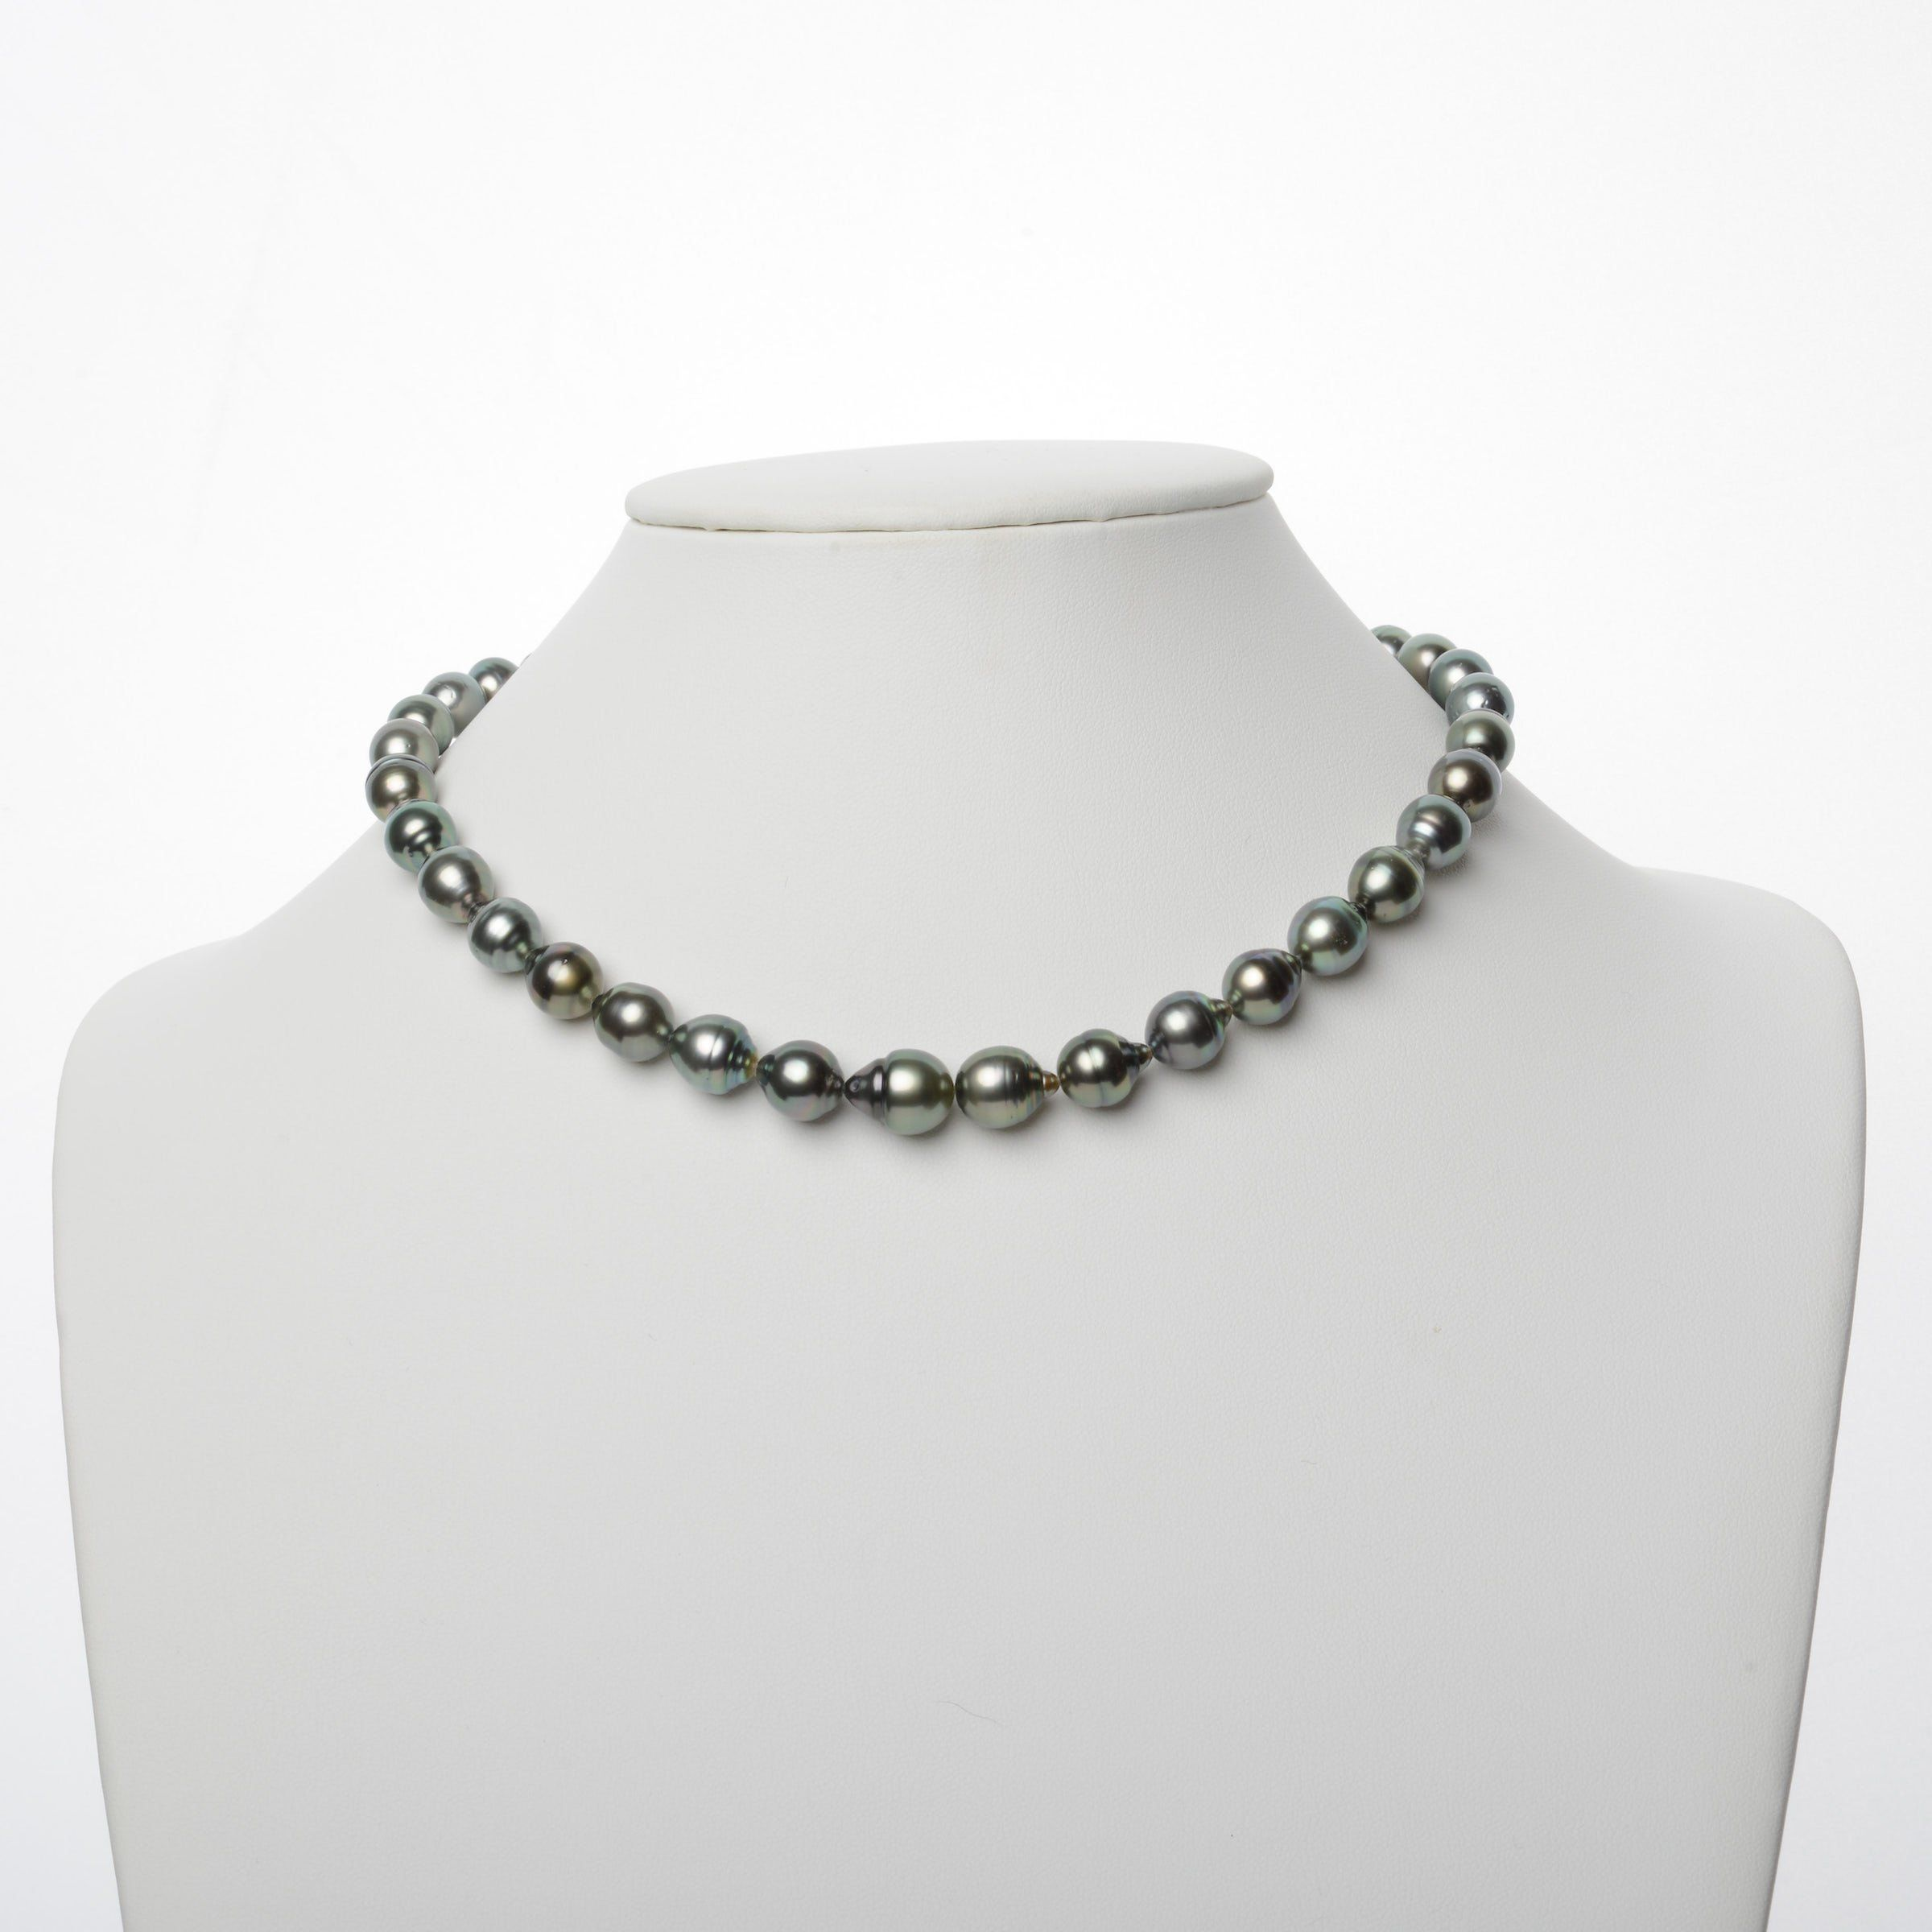 9.0-11.2 mm AA+/AAA Tahitian Baroque Pearl Necklace